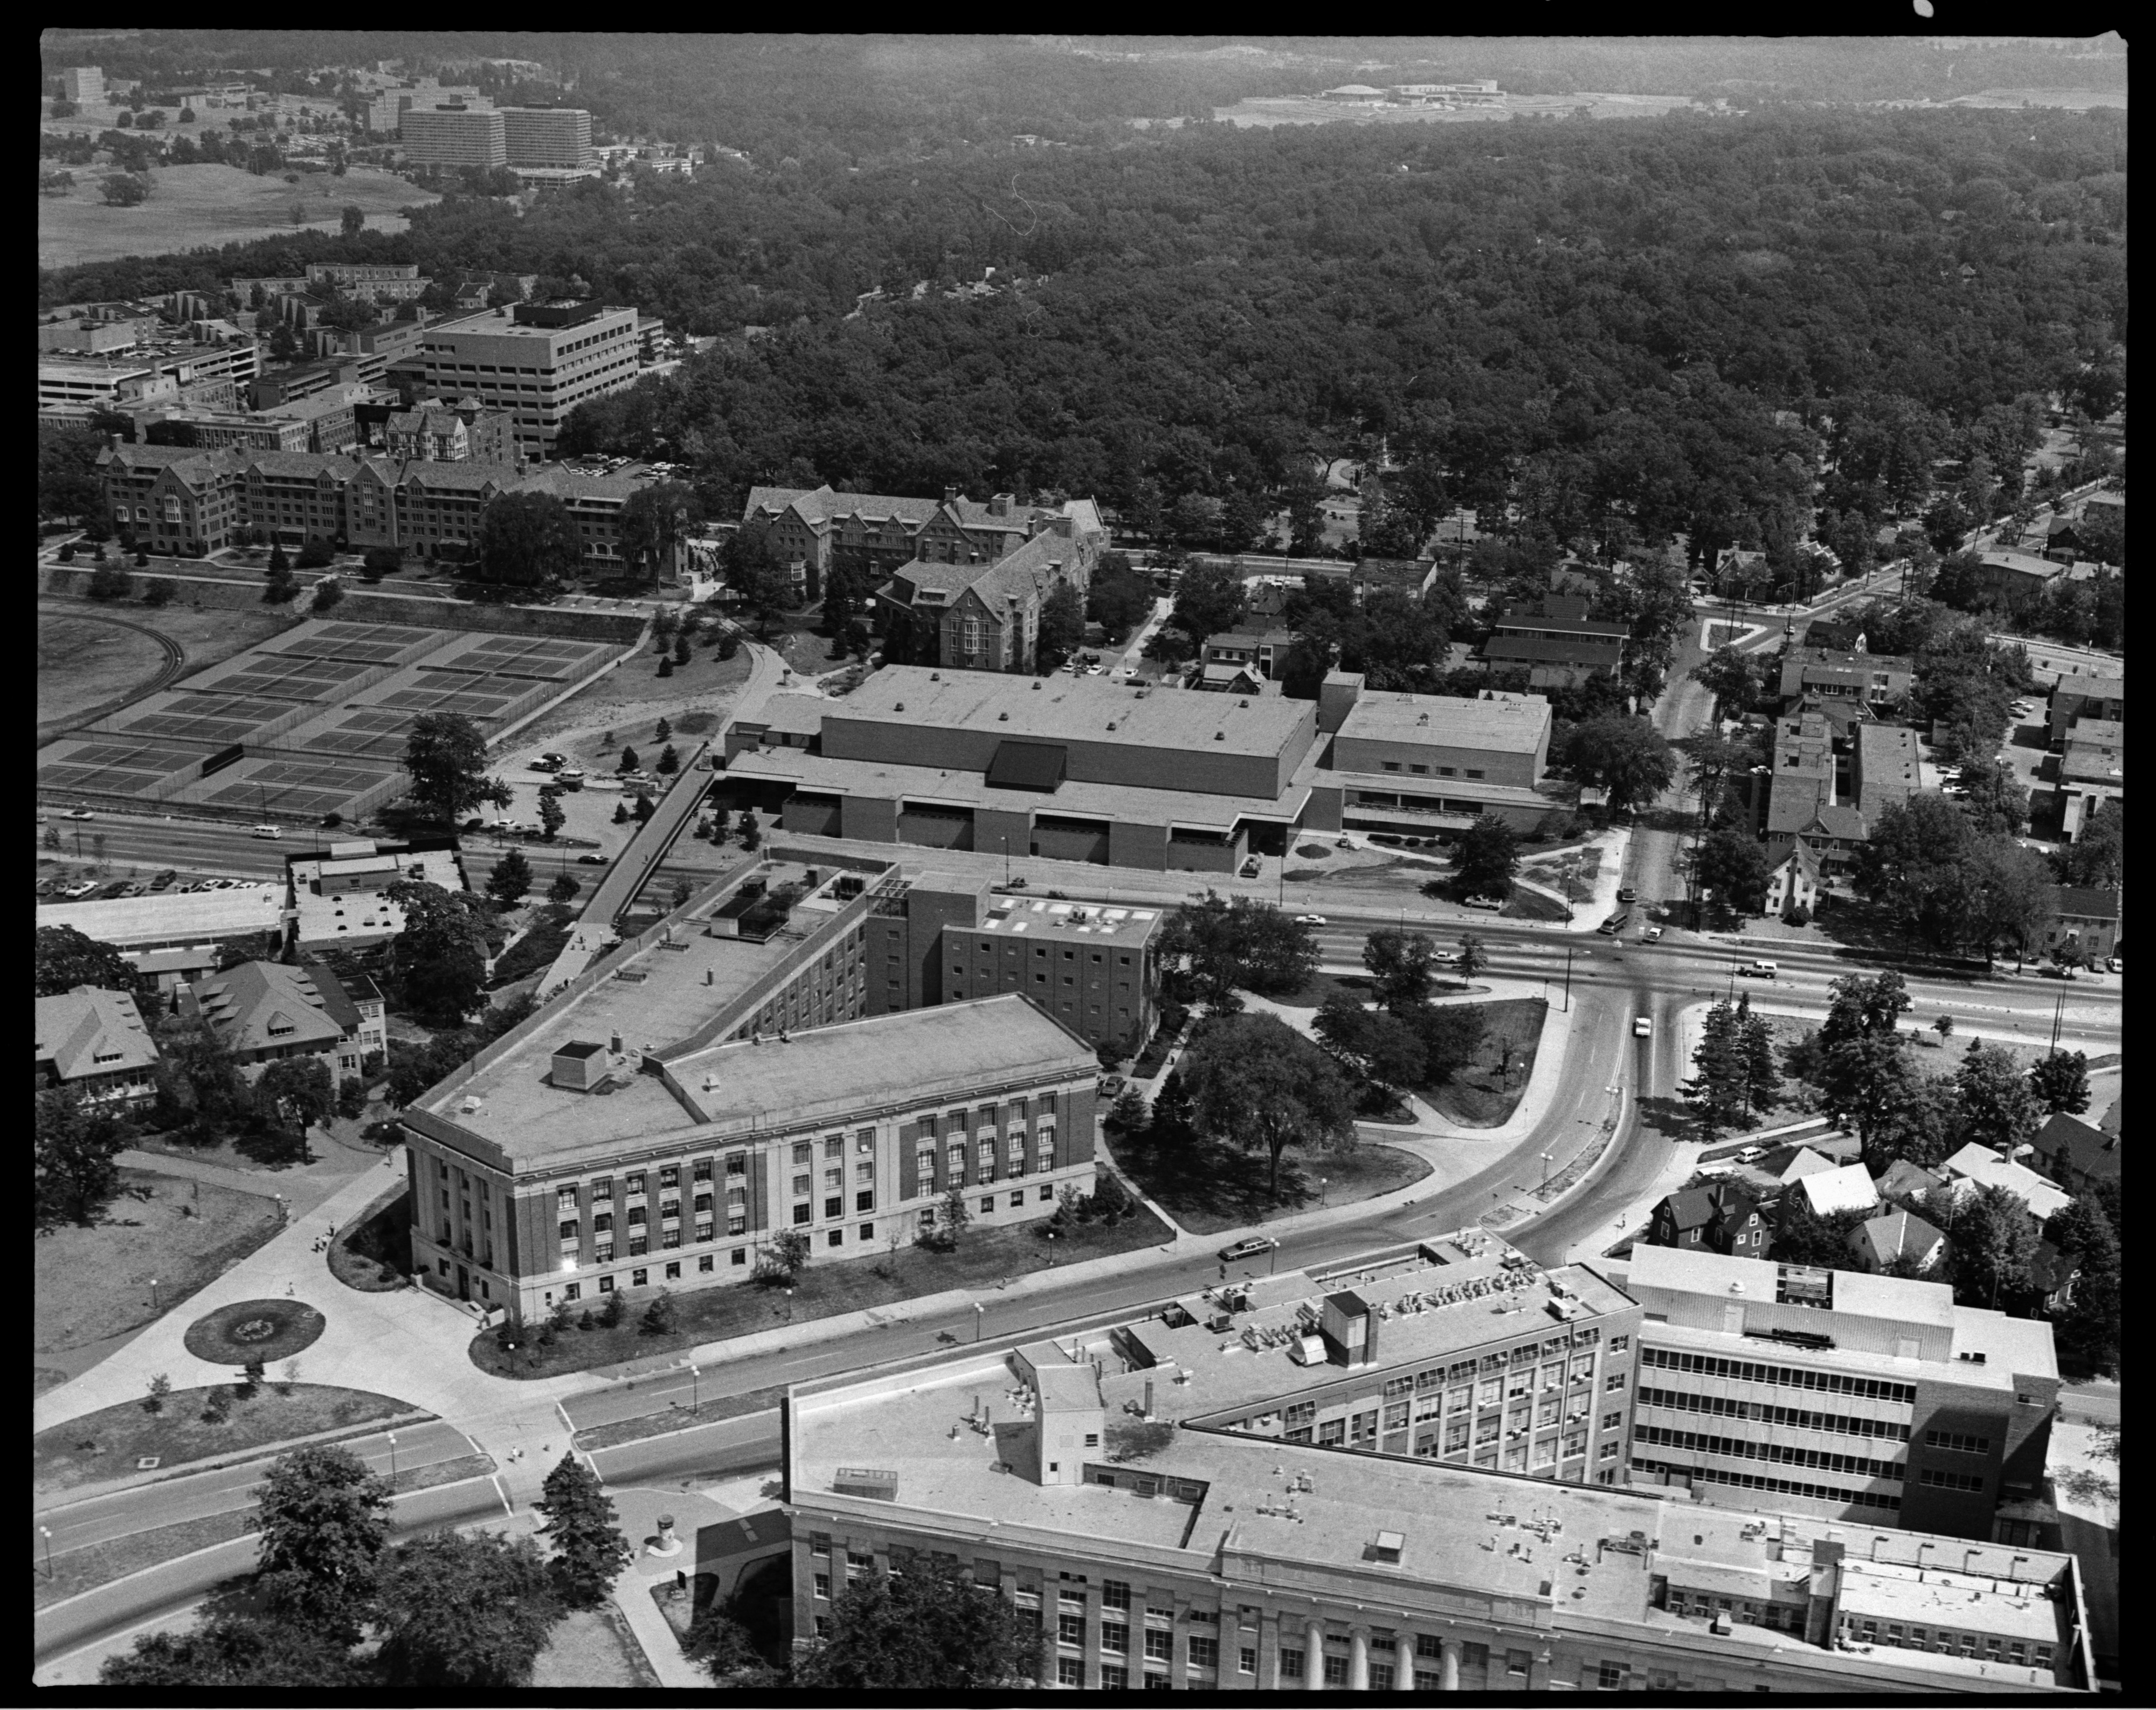 Aerial Photograph of the Central Campus Recreation Building, University of Michigan, September 1976 image